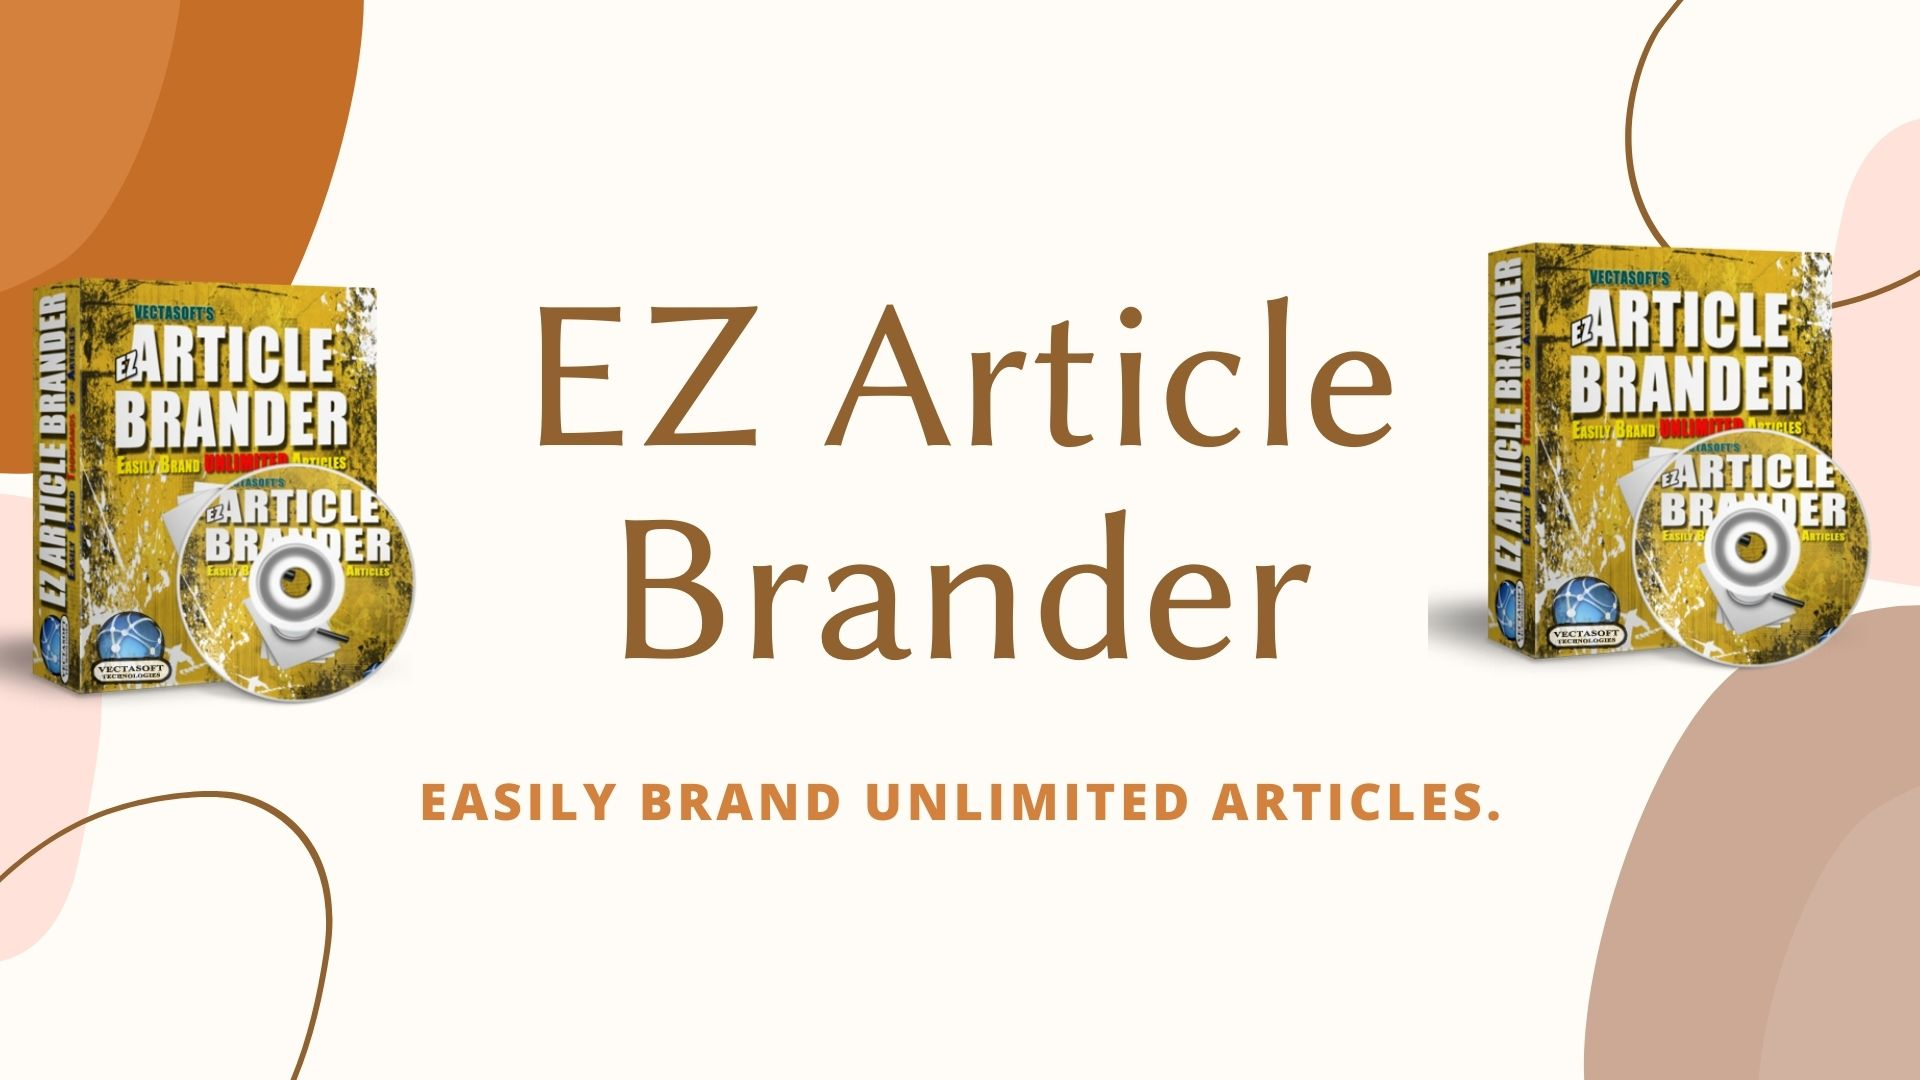 EZ Article Brander Easily Brand Unlimited Articles